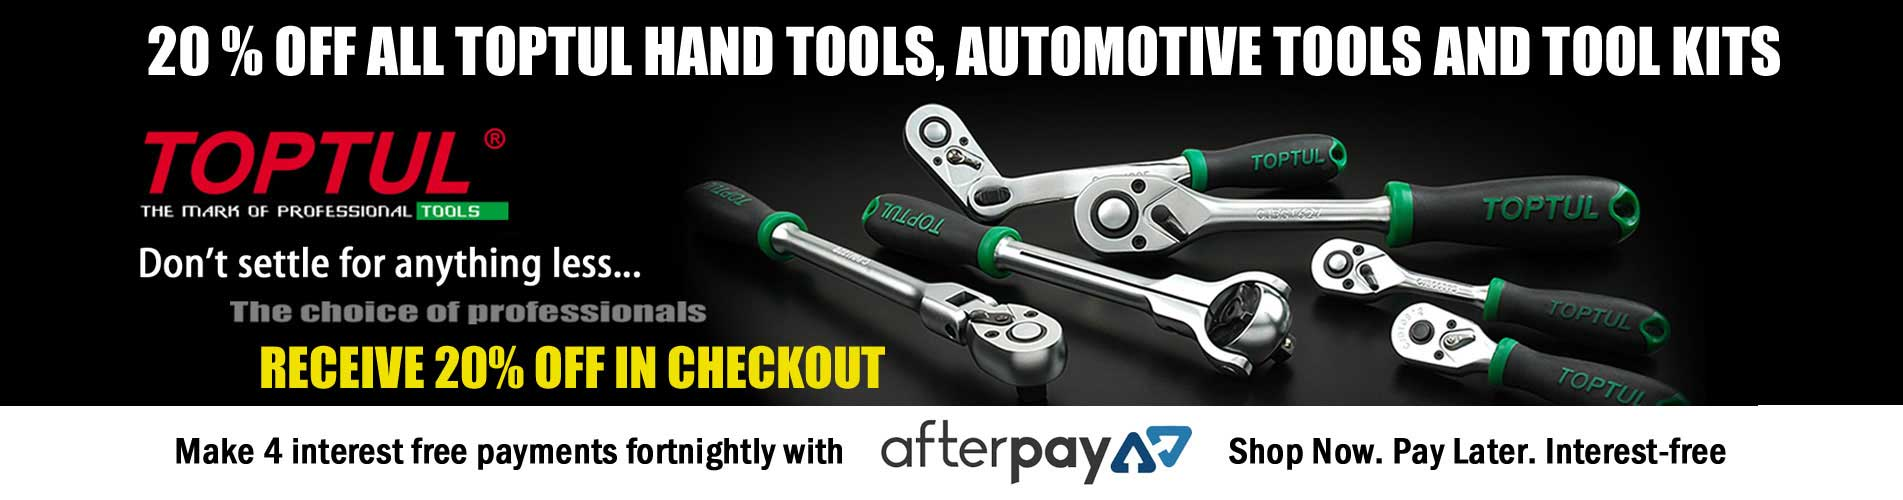 20% OFF ALL TOPTUL TOOLS